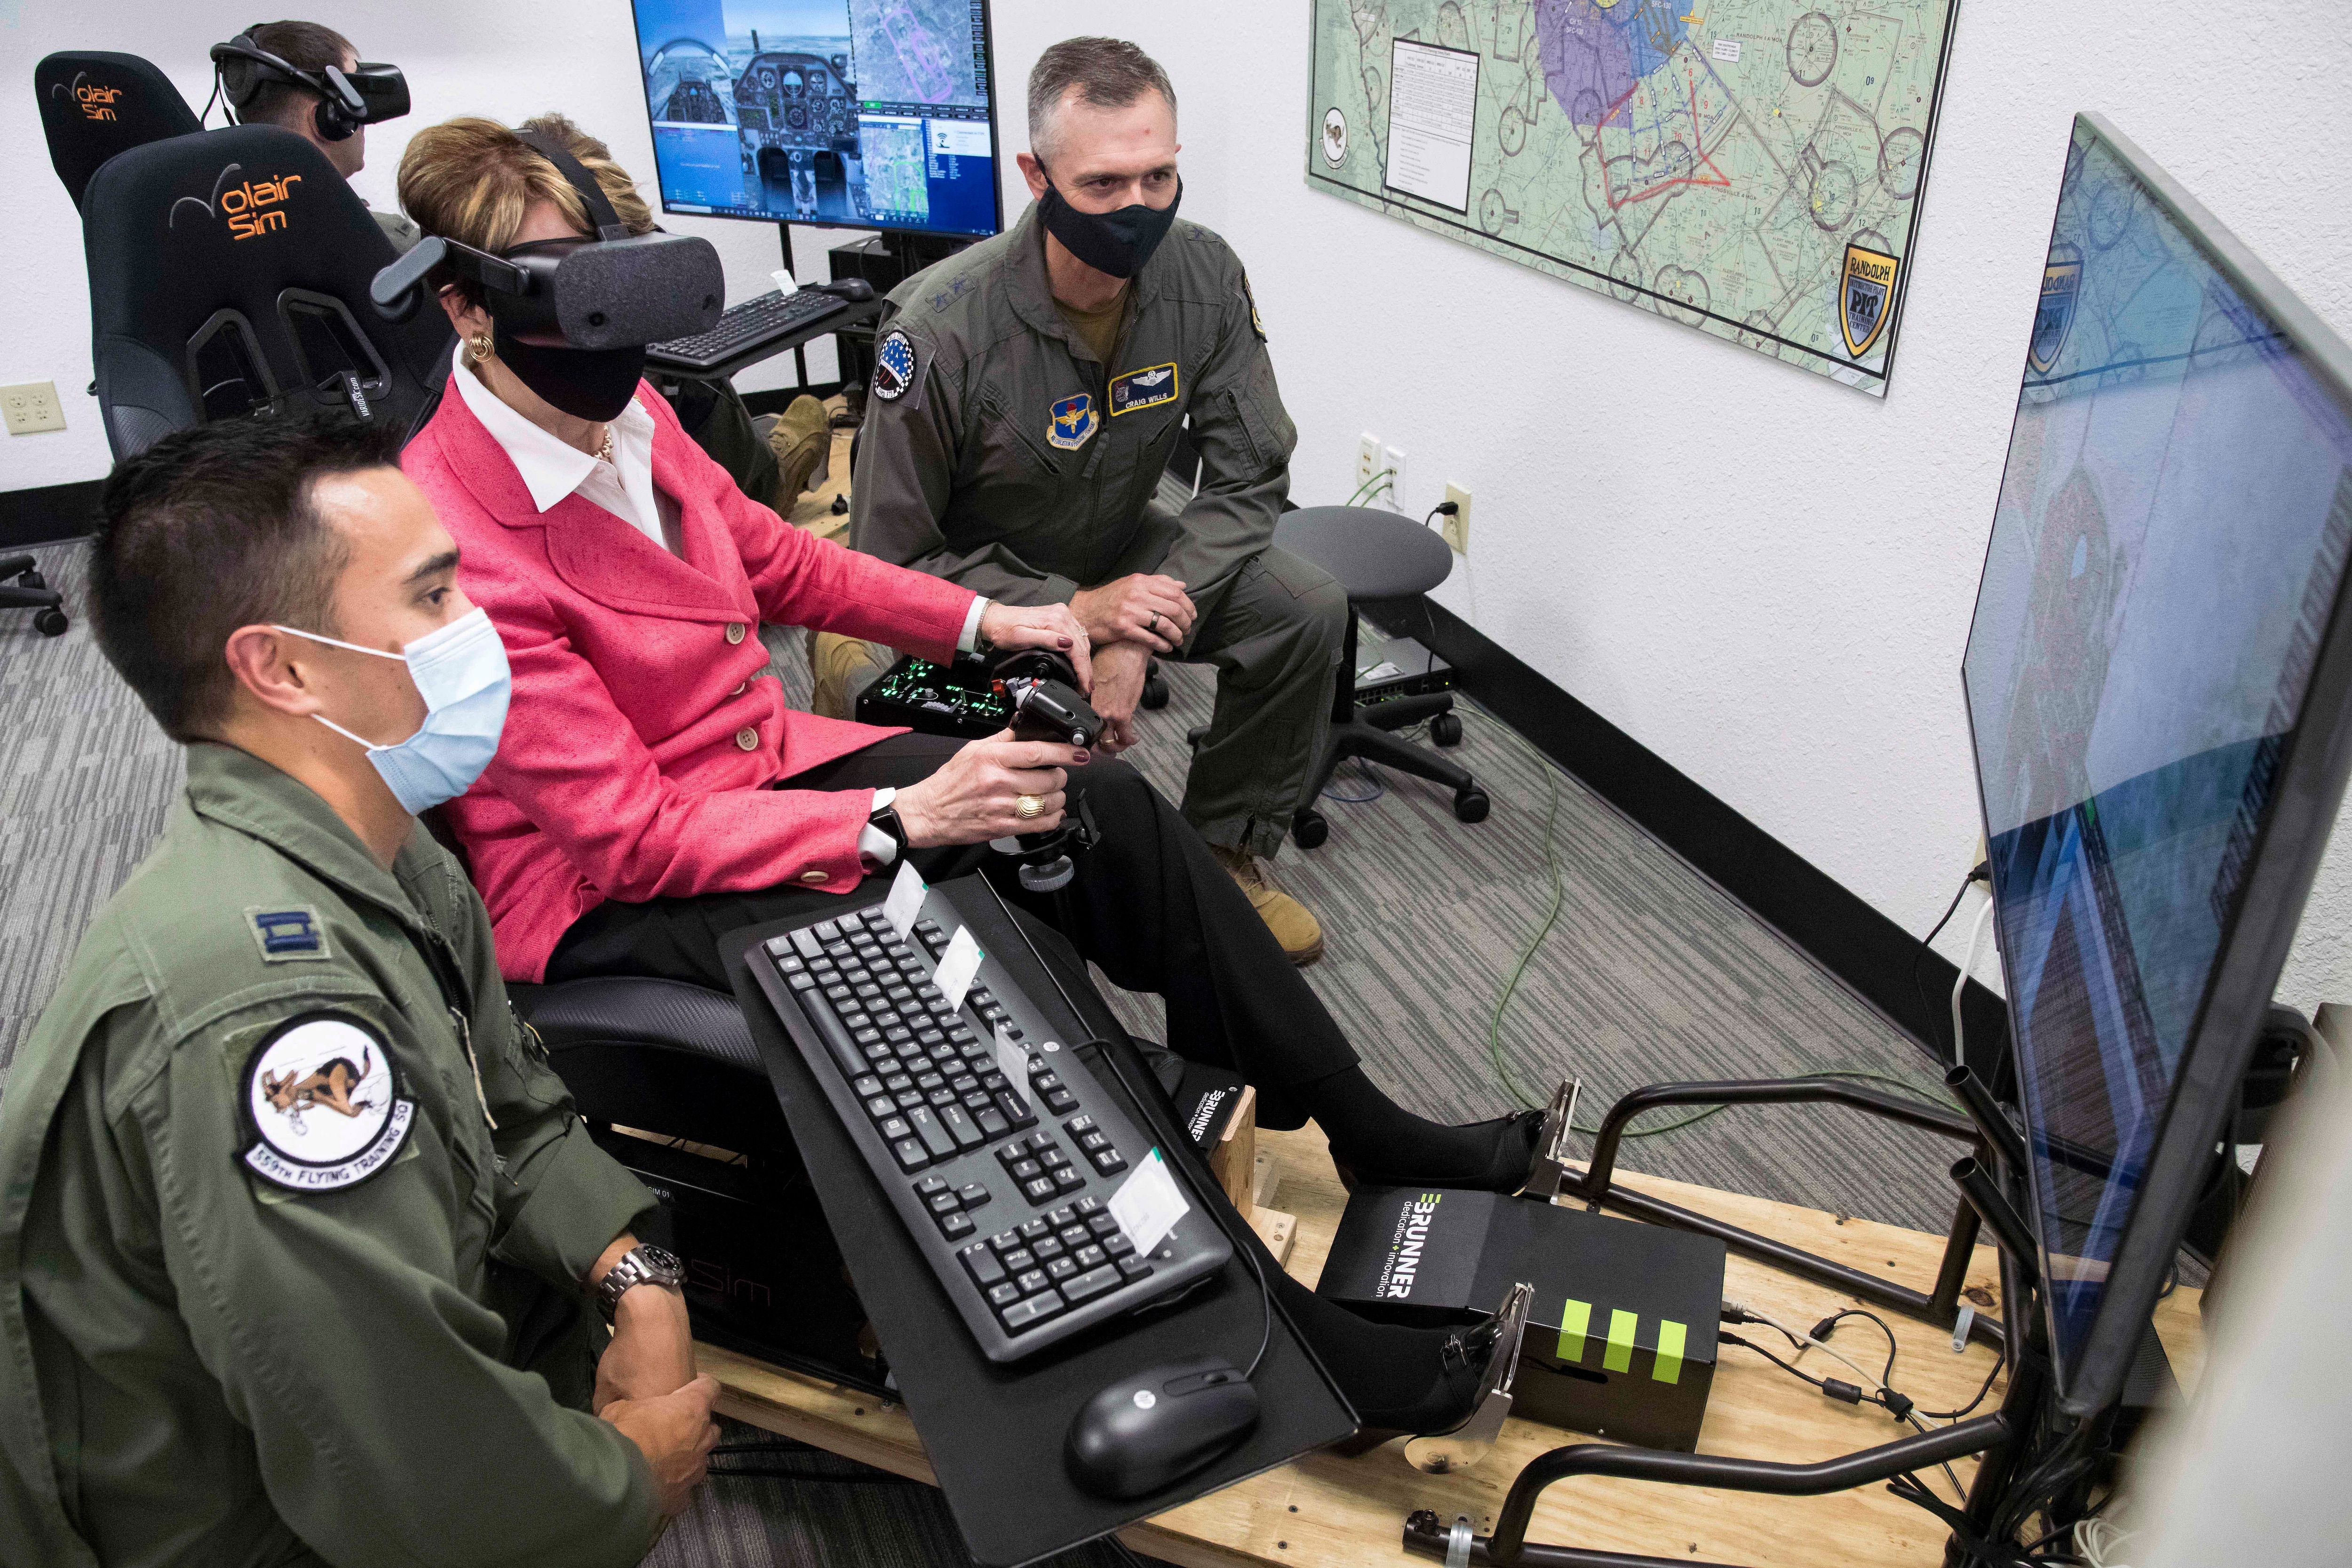 As Air Force revamps pilot training, flight safety concerns linger